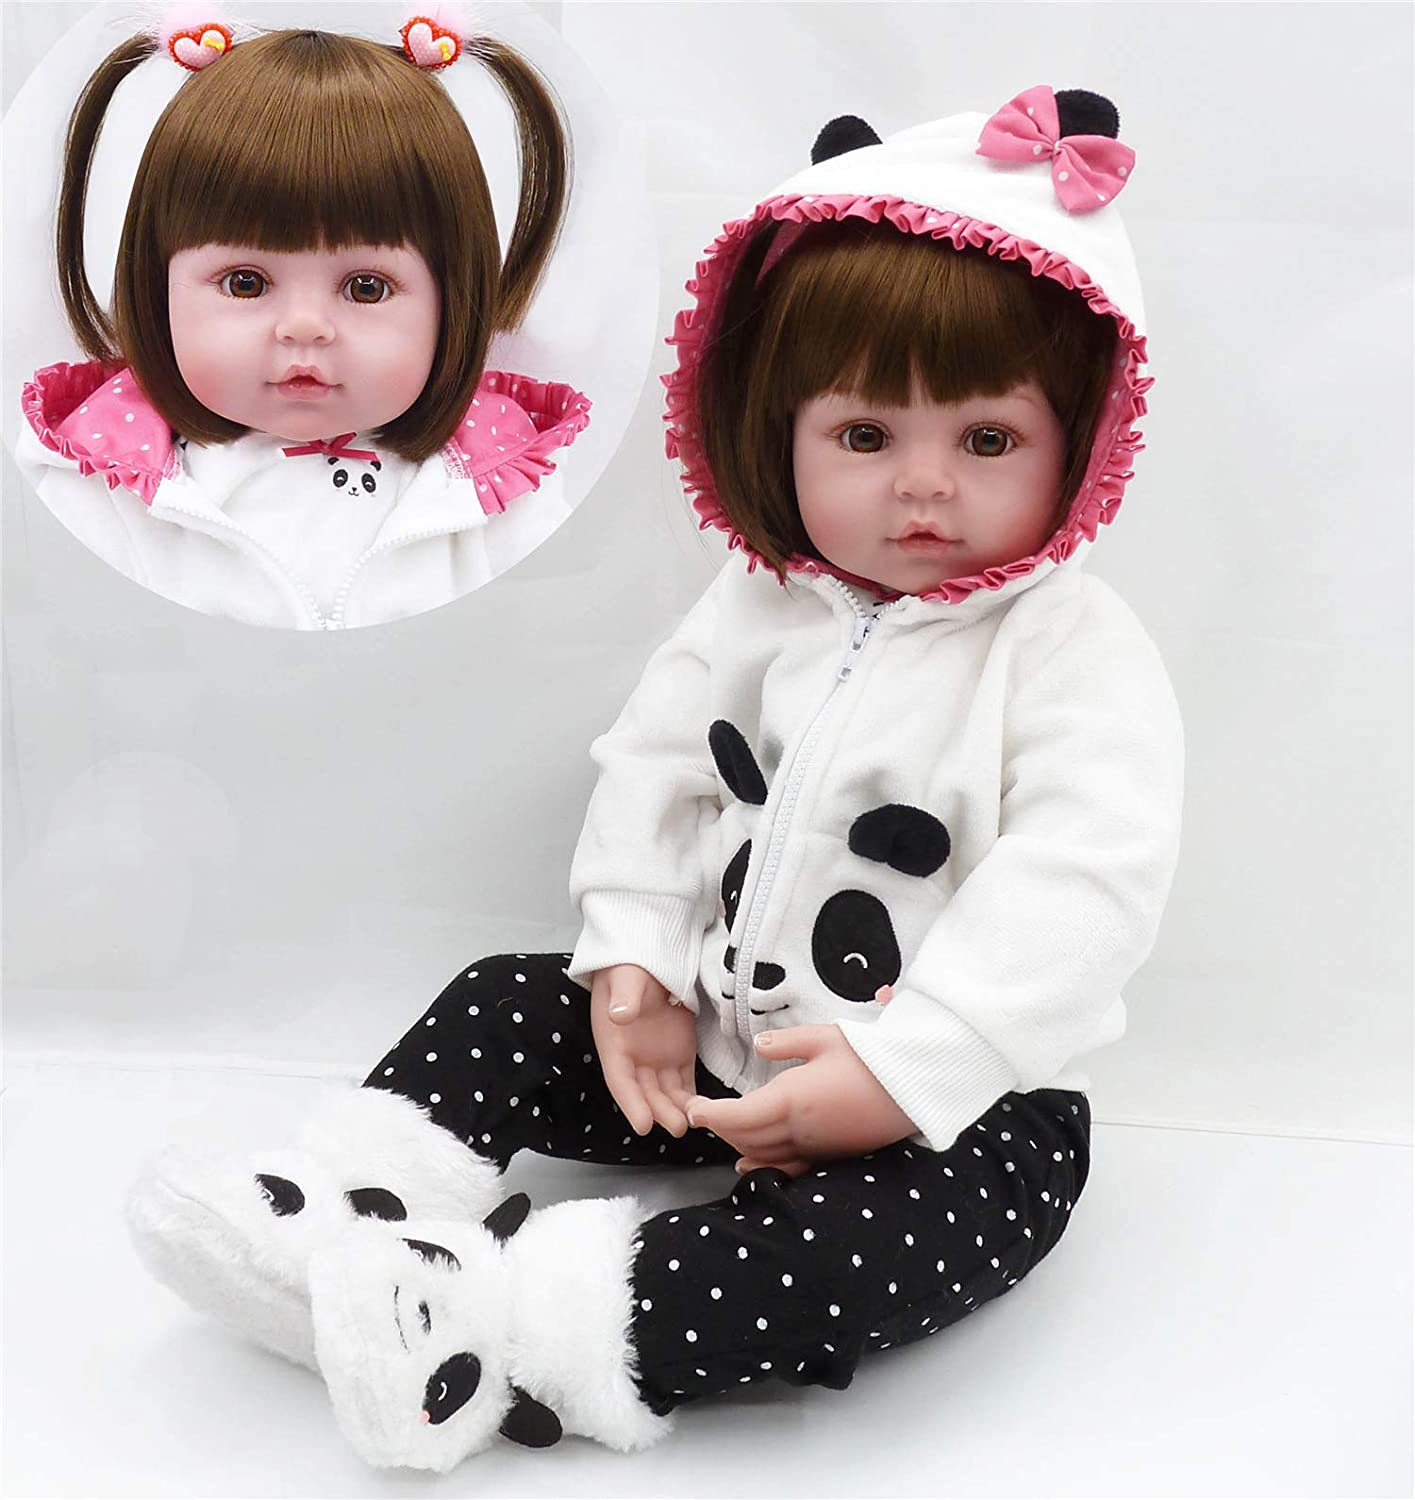 """Real Life Reborn Baby Dolls Silicone Toddler Girl Vinyl Toys in Panda Outfit 18/"""""""